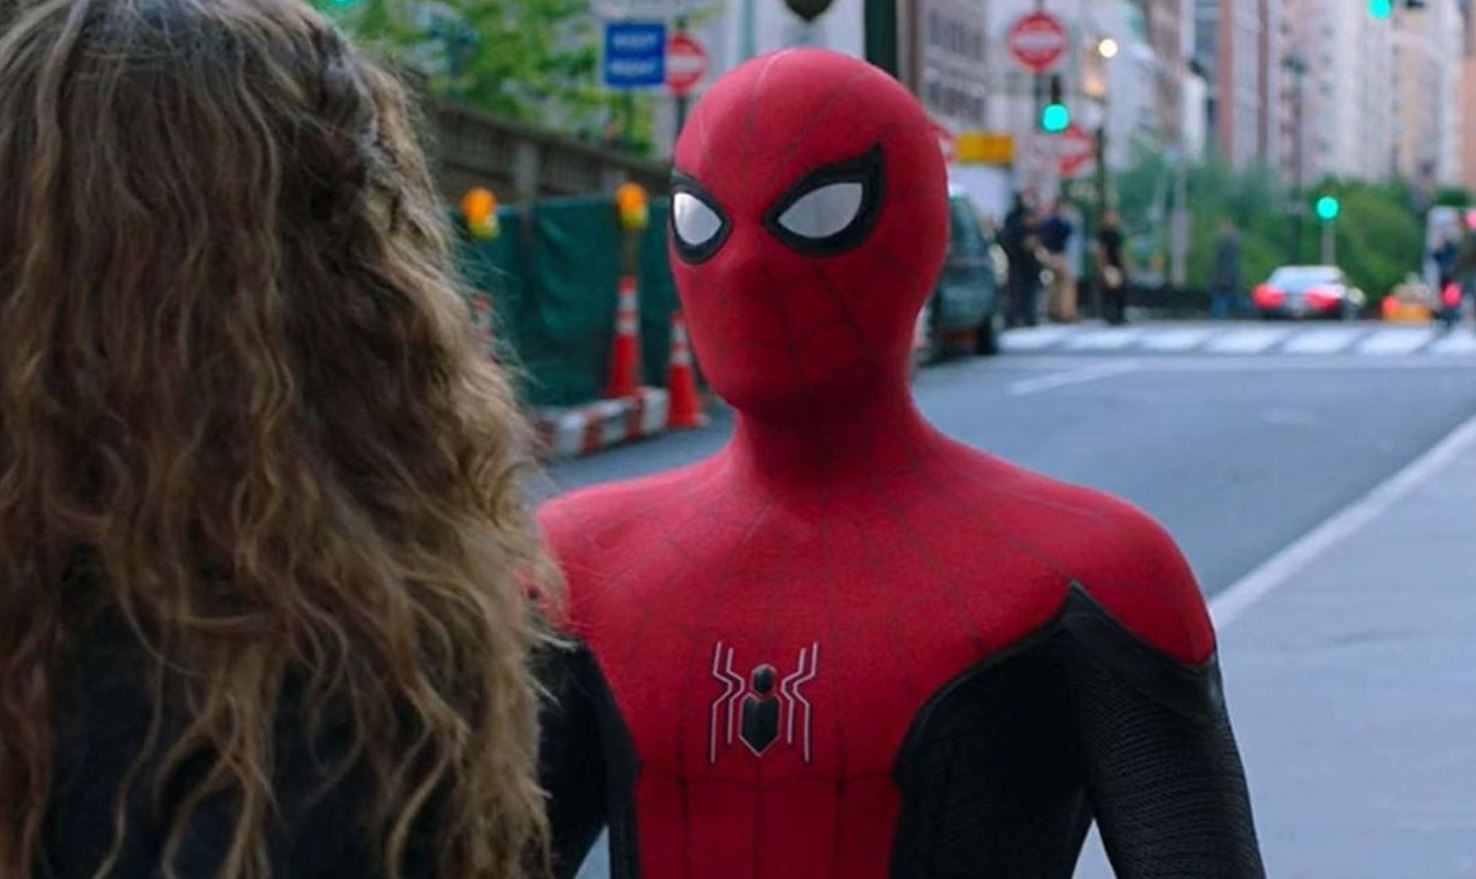 Secrets Revealed Will Disney Buy Back Spider-Man from Sony